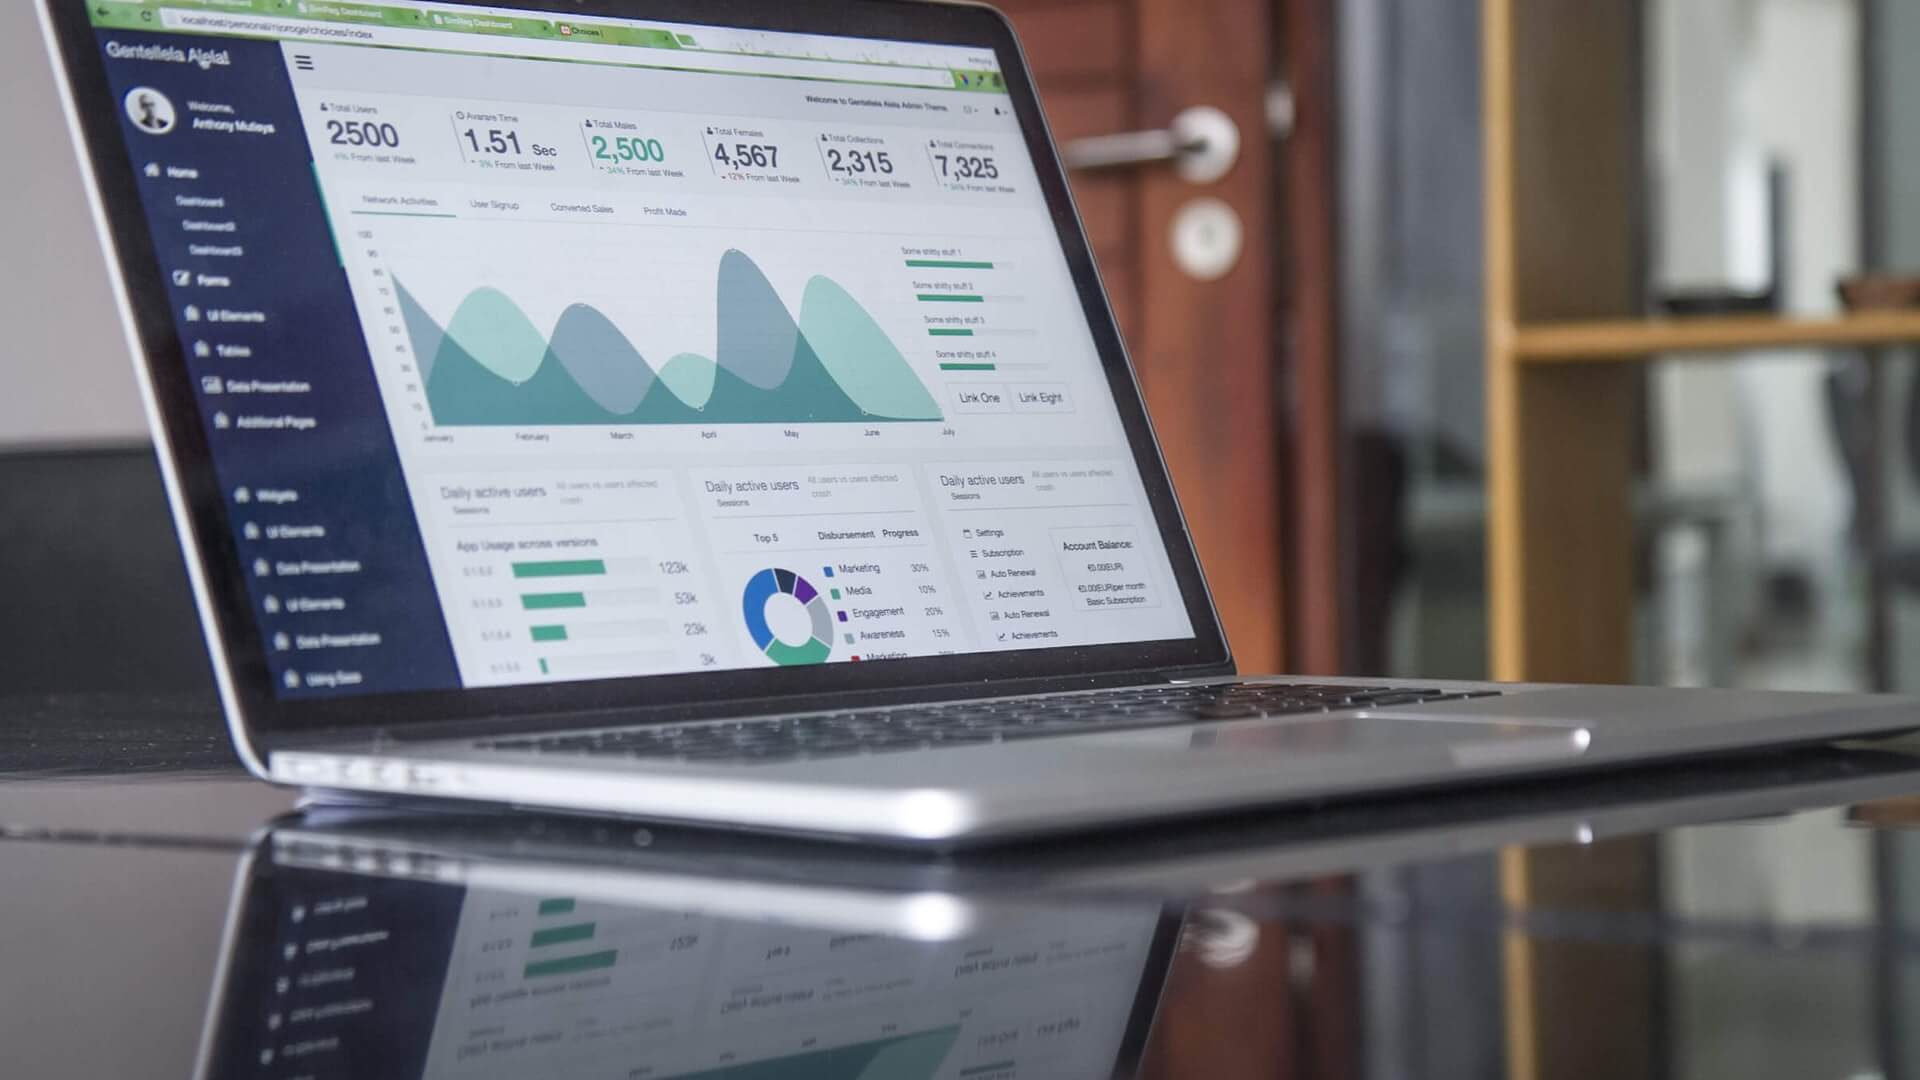 How to Choose an Embedded Analytics Solution